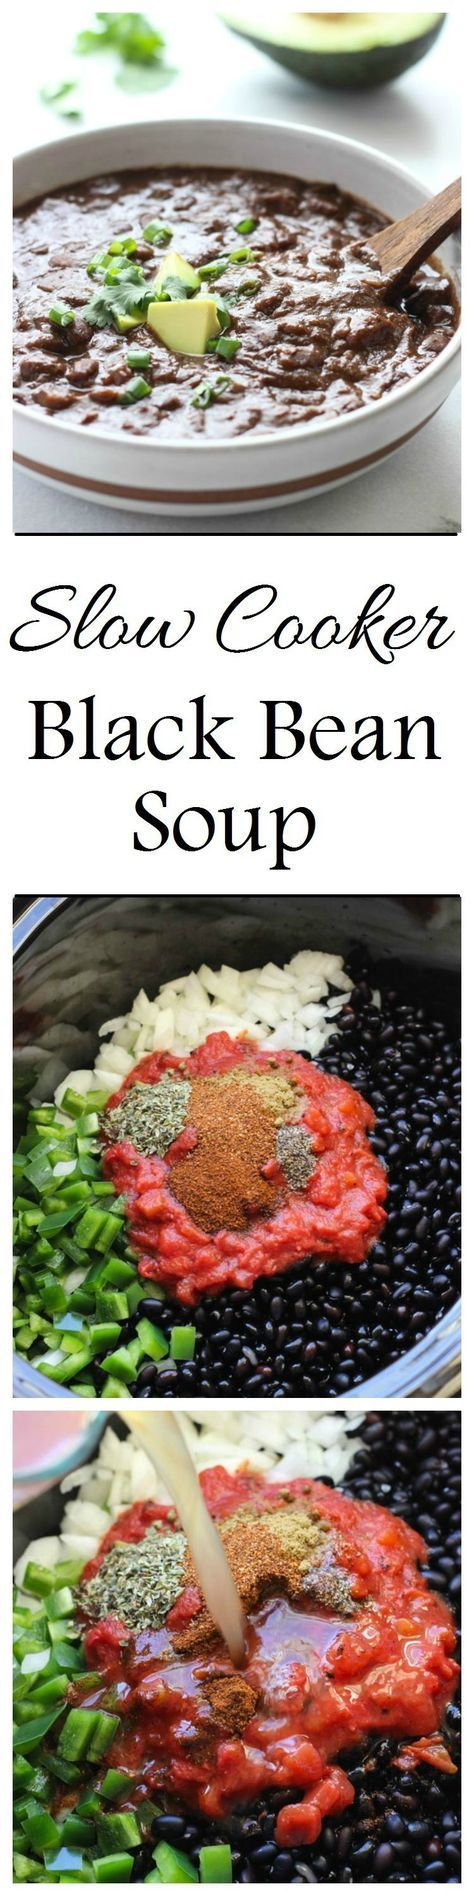 Easy Slow Cooker Black Bean Soup- packed with antioxidants and protein! #crockpot #recipe #vegan